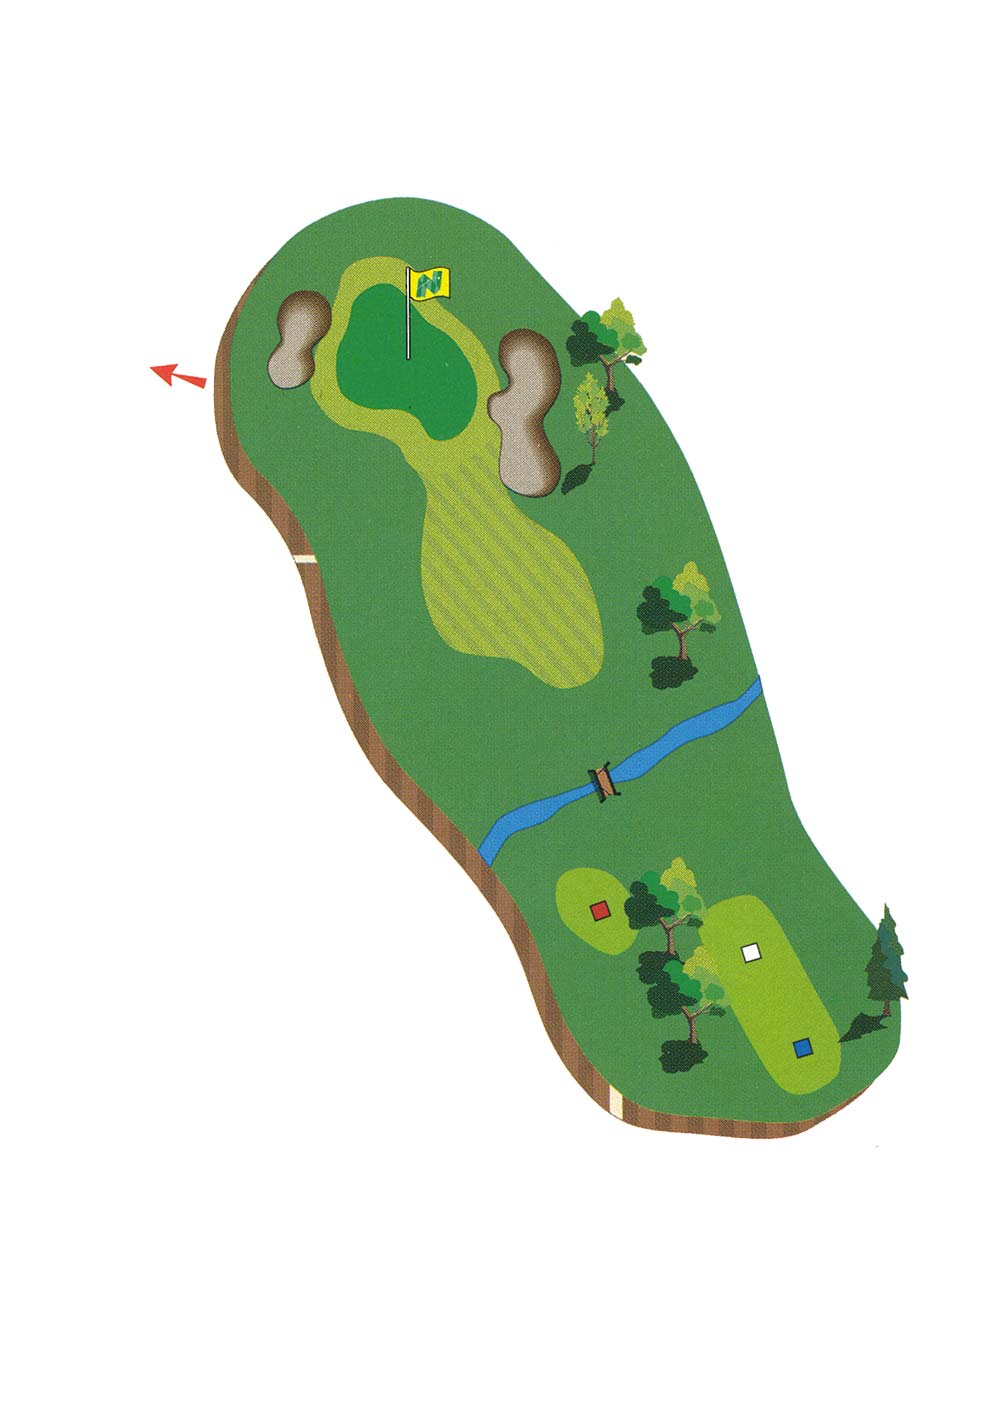 NS Course Description - Hole 17